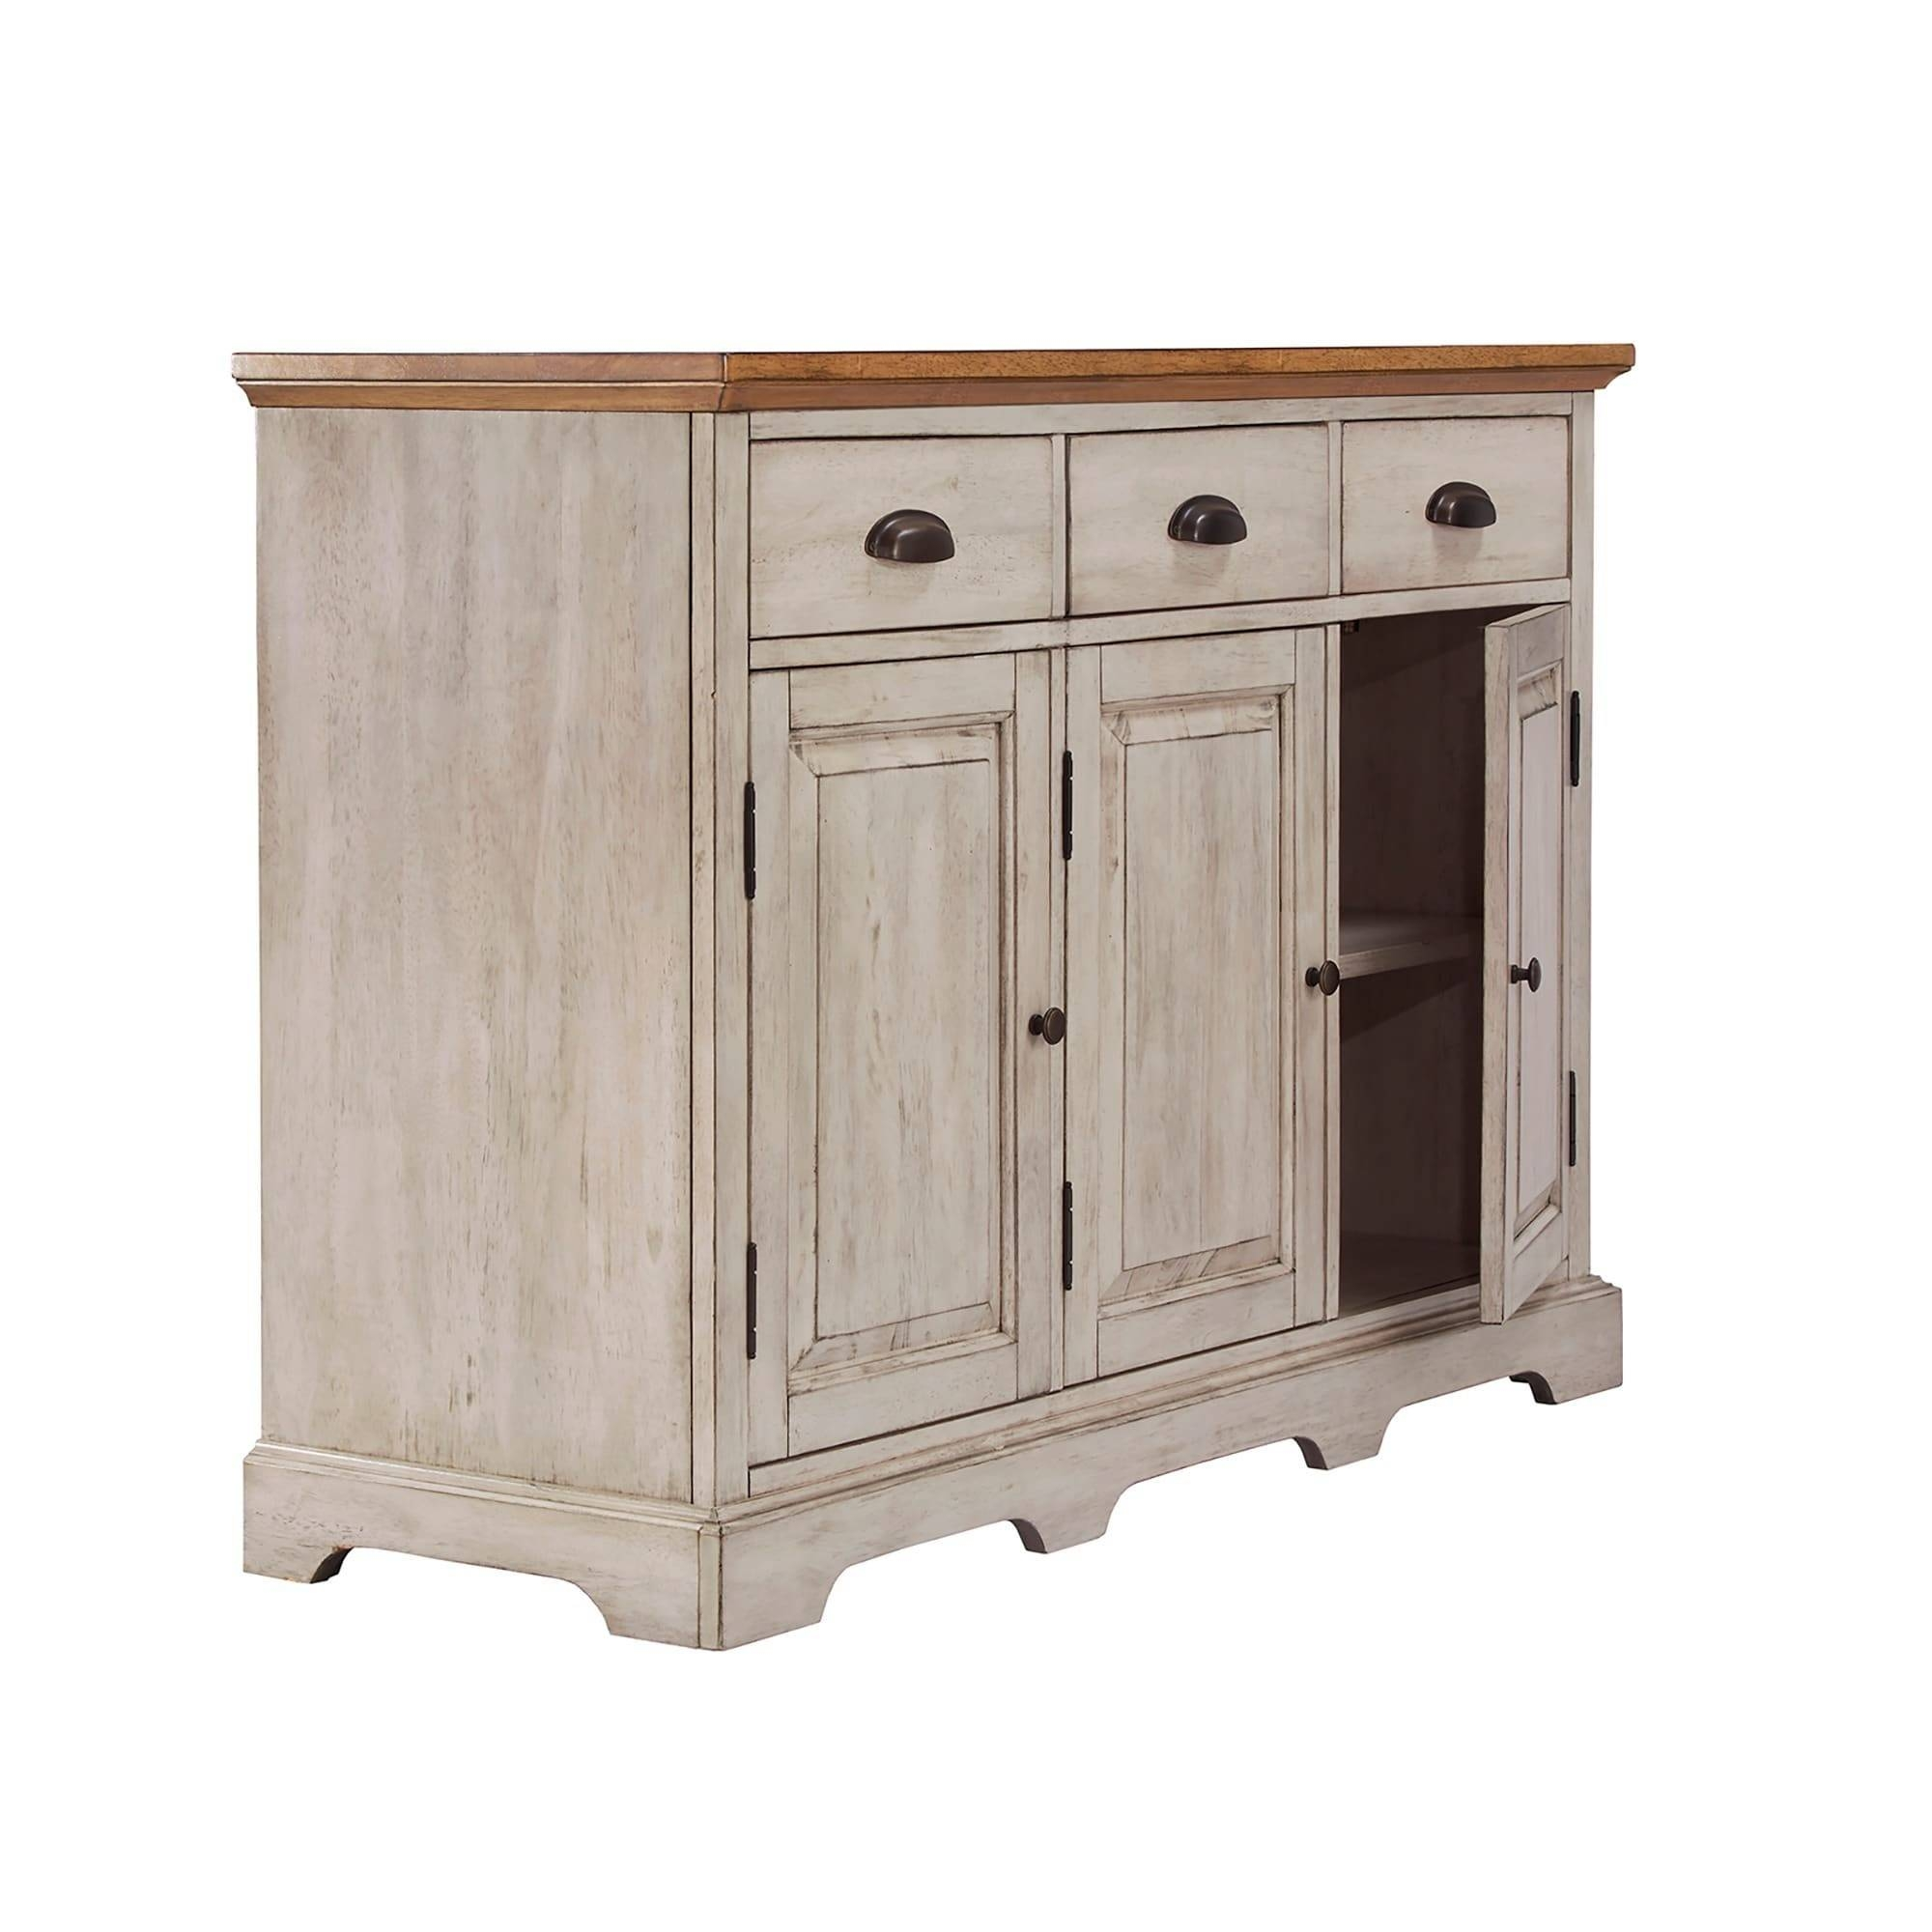 Eleanor Two Tone Wood Cabinet Buffet Serverinspire Q Classic Within Best And Newest 50 Inch Sideboards (#10 of 15)